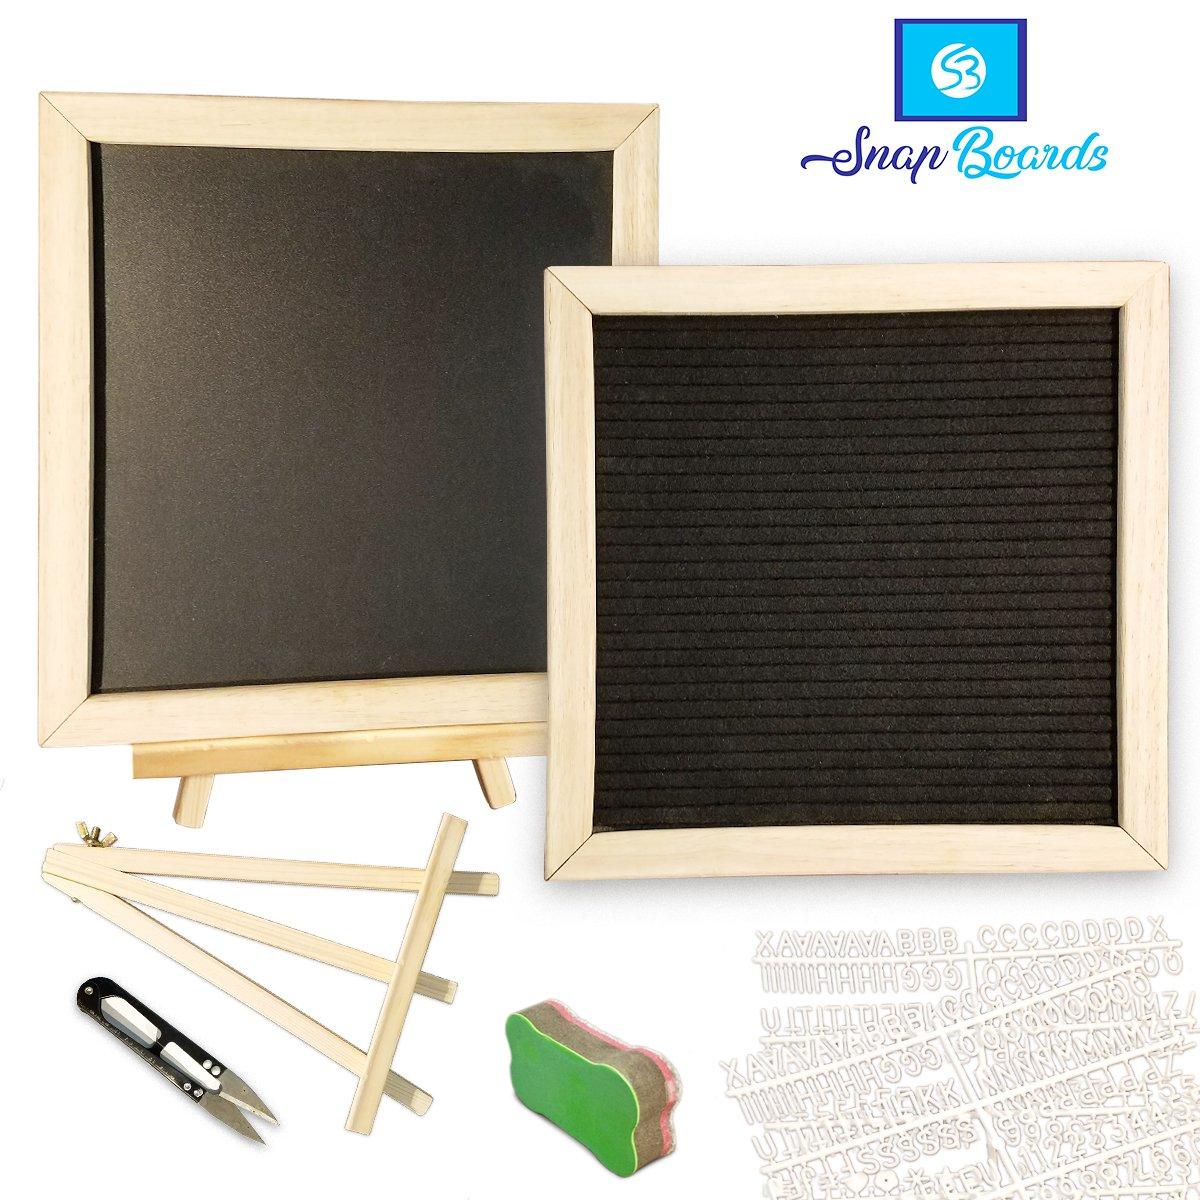 Snap Boards Double Sided Felt Letter Board and Chalkboard Set, 10 X 10 Inch Oak Wood Frame, 340 Letters/Characters, Chalk Markers, Letter Bag, Easel Stand, Cloth Eraser, and Scissors